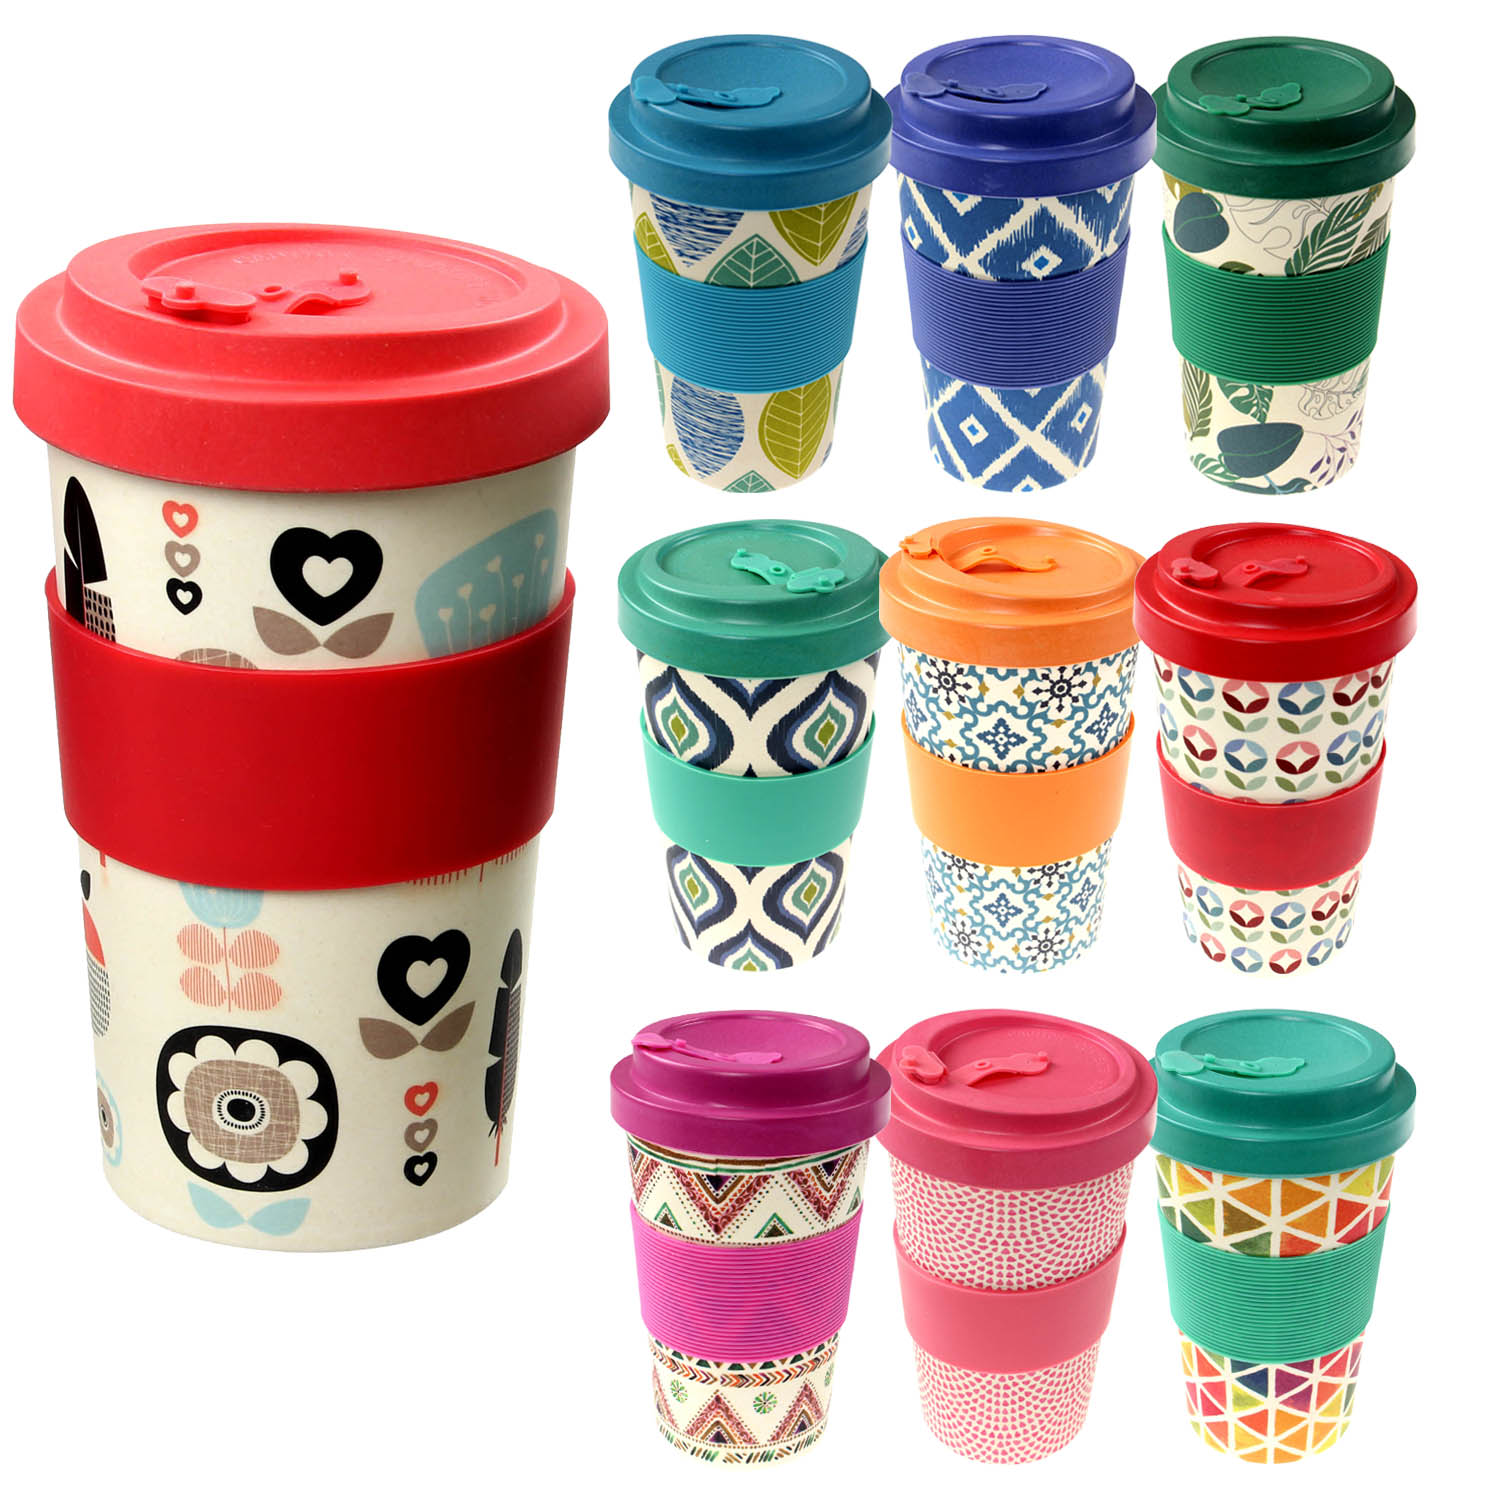 Home Furniture Diy Vacuum Flasks Mugs Reusable Bamboo Fibre Coffee Cups Eco Friendly Thermal Insulated Travel Mug Lid Bortexgroup Com